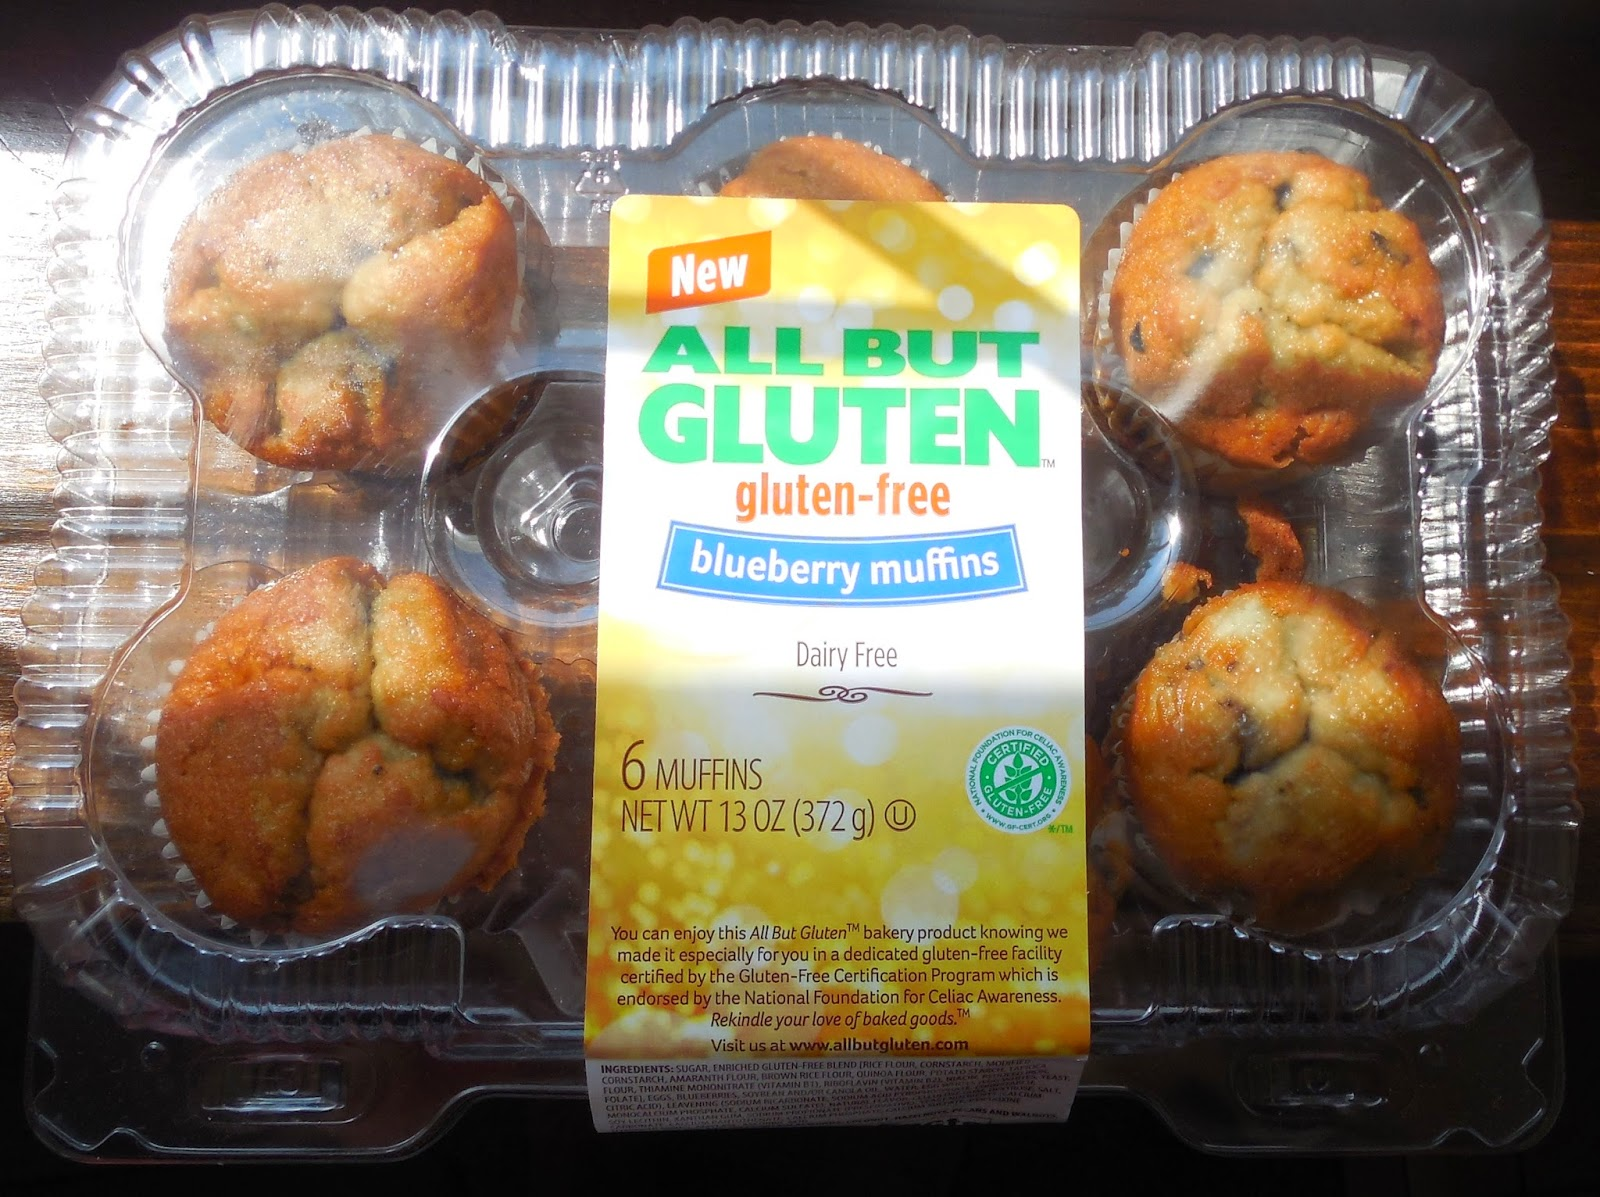 All But Gluten Blueberry Muffins